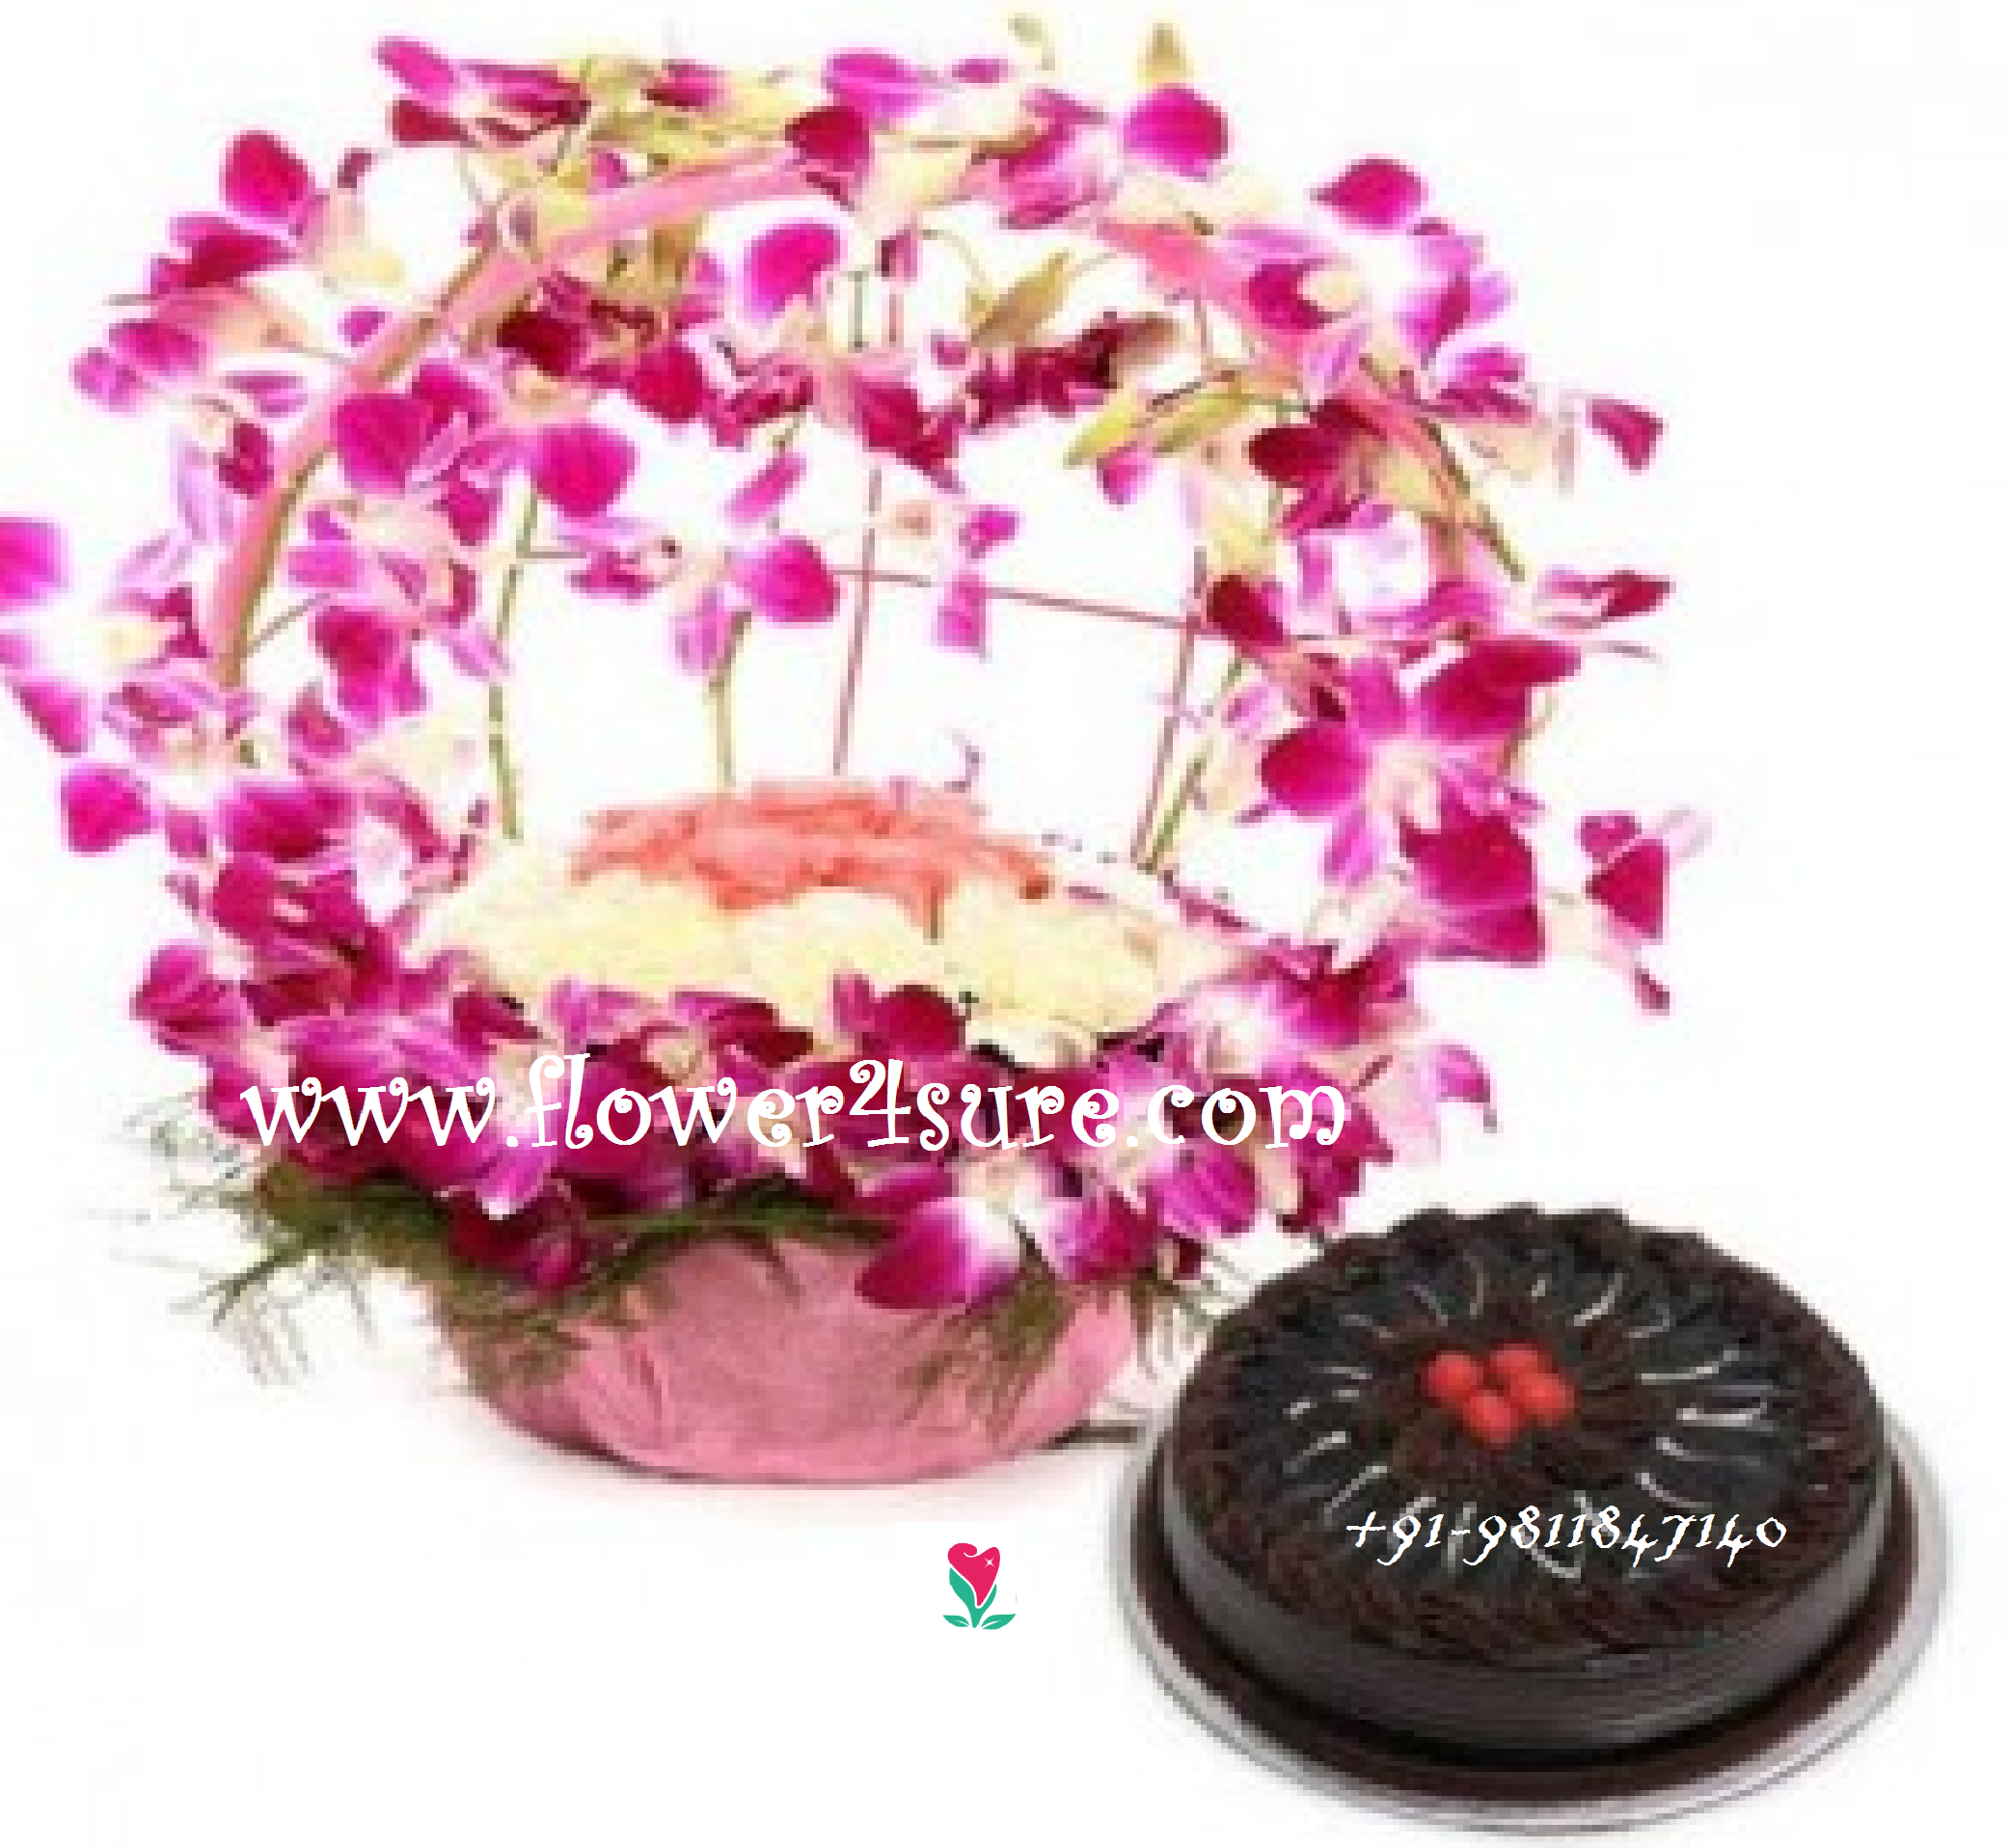 Looking for best flowers shop in Delhi to order flowers